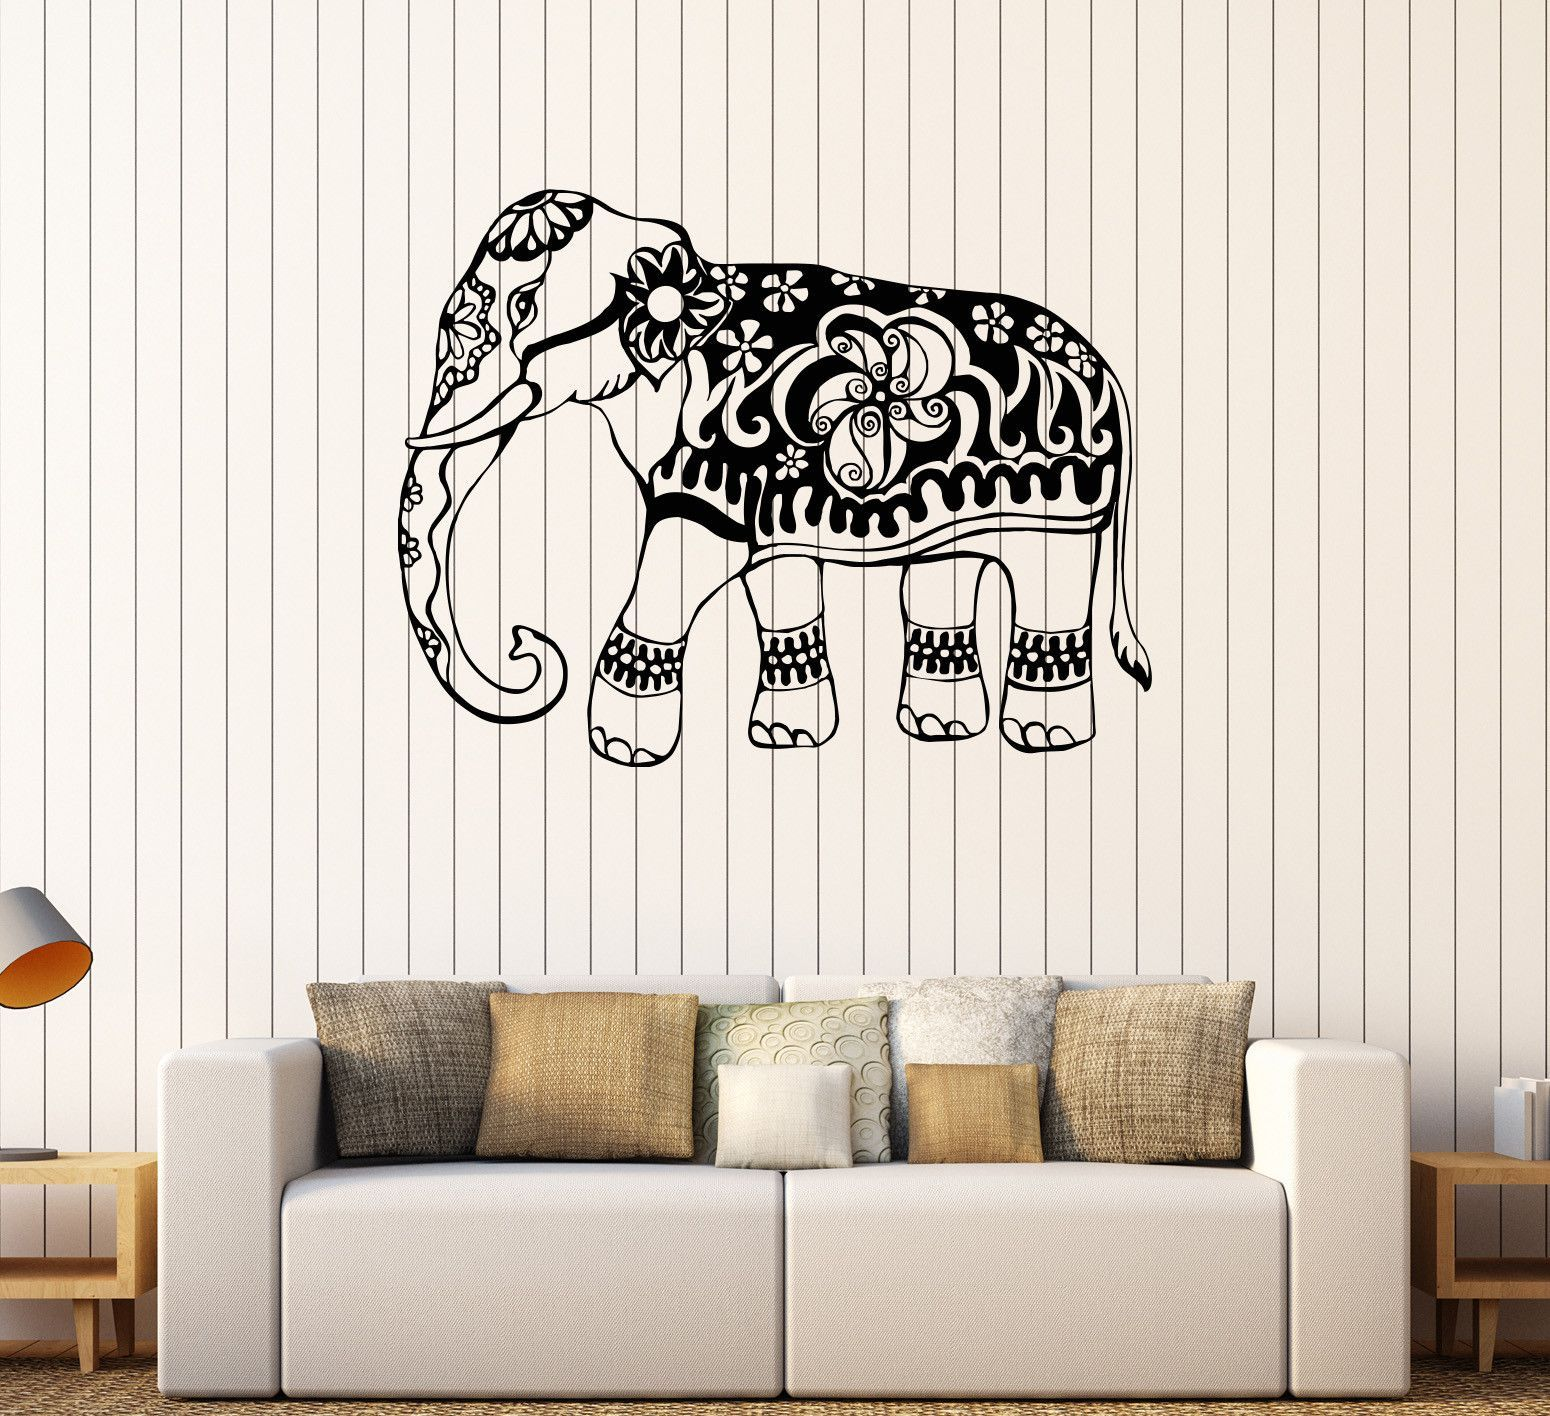 Vinyl Wall Decal India Elephant Animal Ornament Stickers Mural